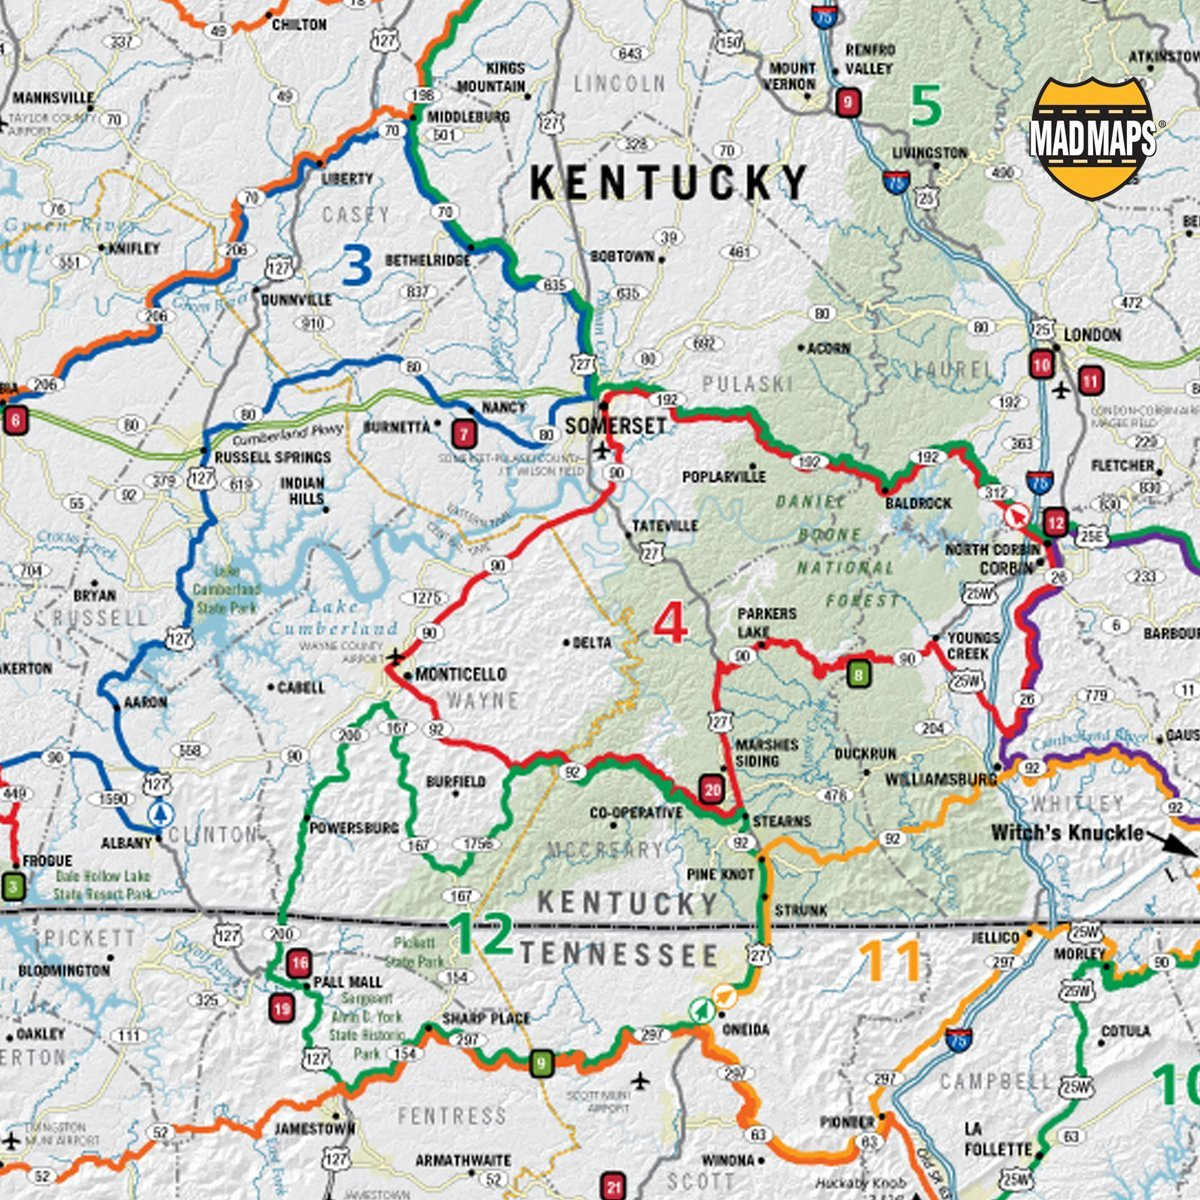 MAD Maps - Scenic Road Trips Map of Smoky Mountains - USRT170: MAD Ky Mountain Parkway Road Map on ky road map, ky roadways map, ky lakes map, ky campgrounds map, ky bus map, ky parks map, ky rivers map, ky golf courses map,